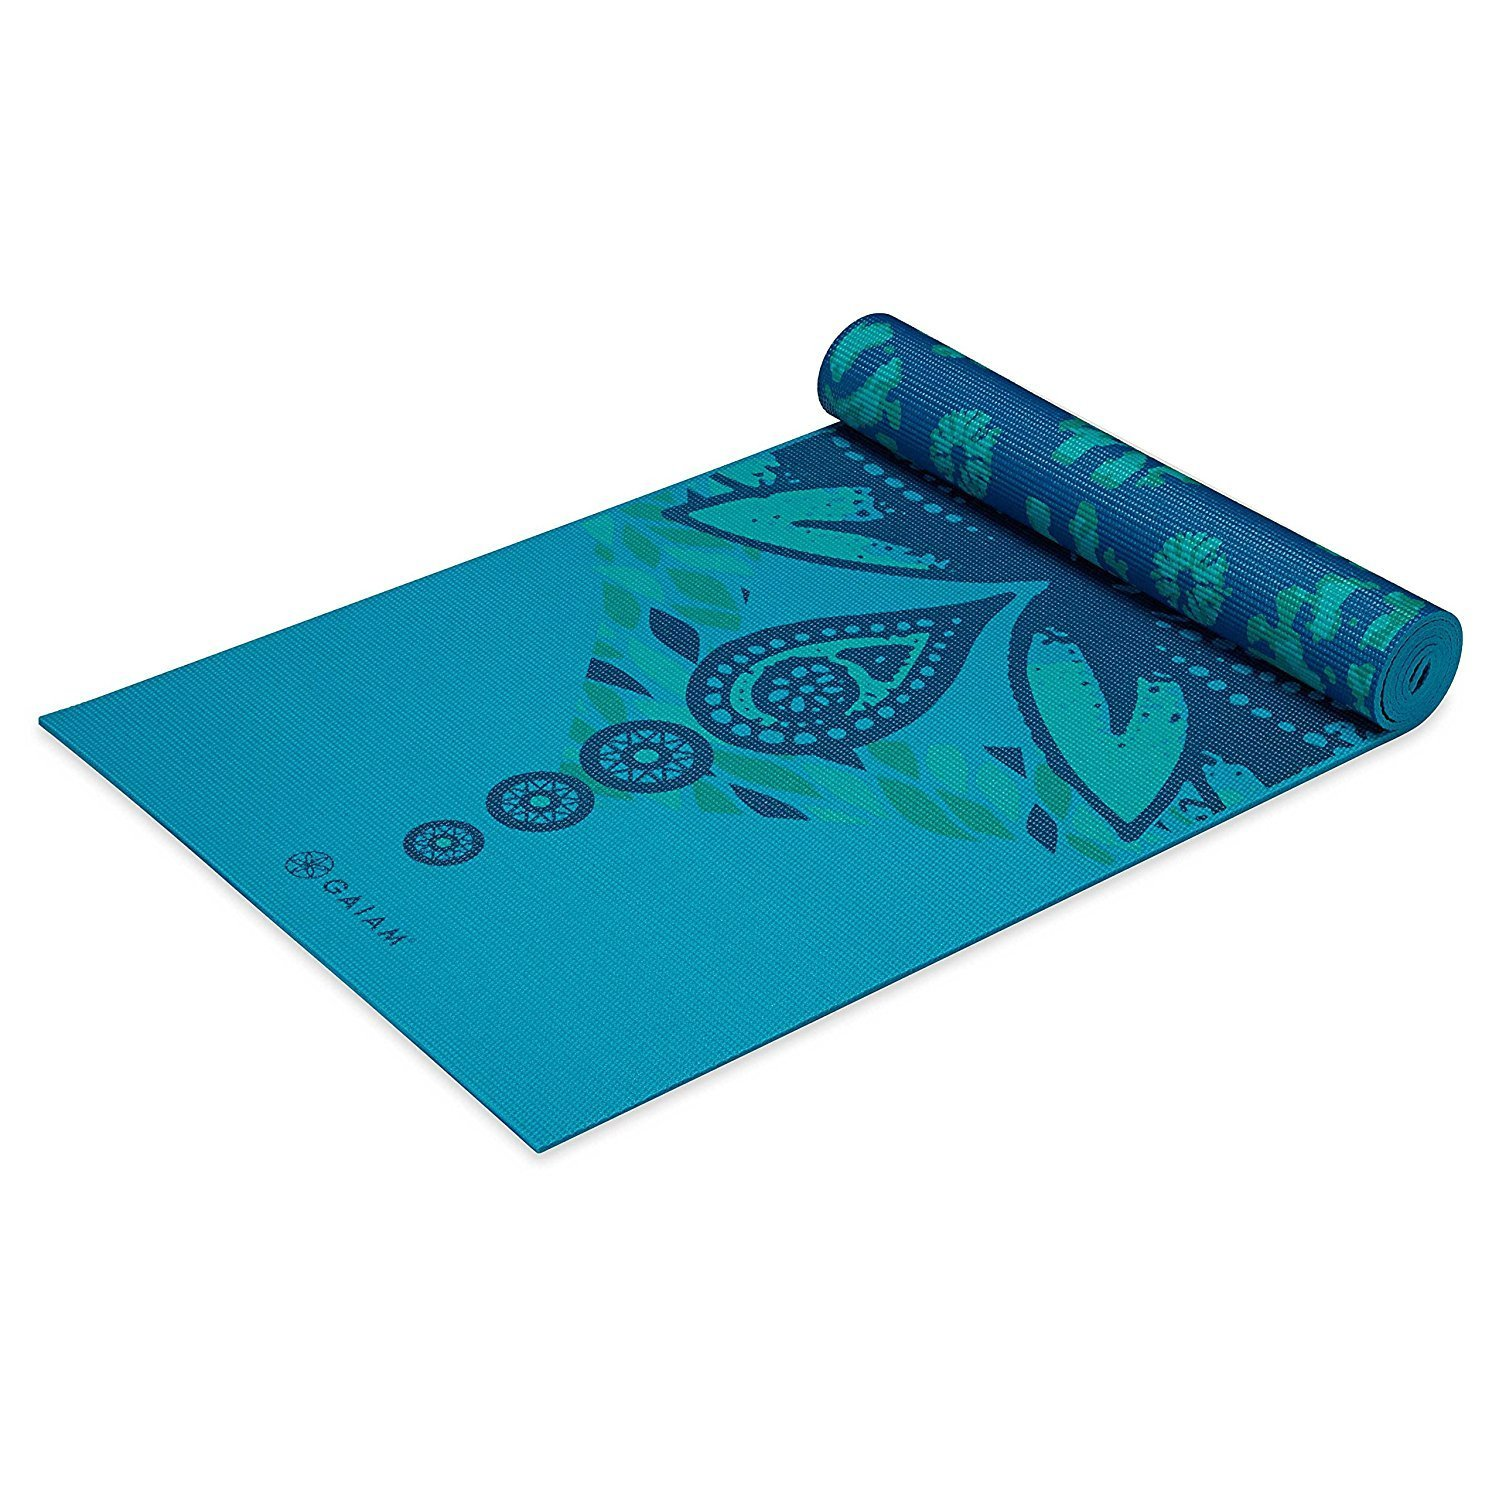 Gaiam Premium Print Reversible Yoga Mat